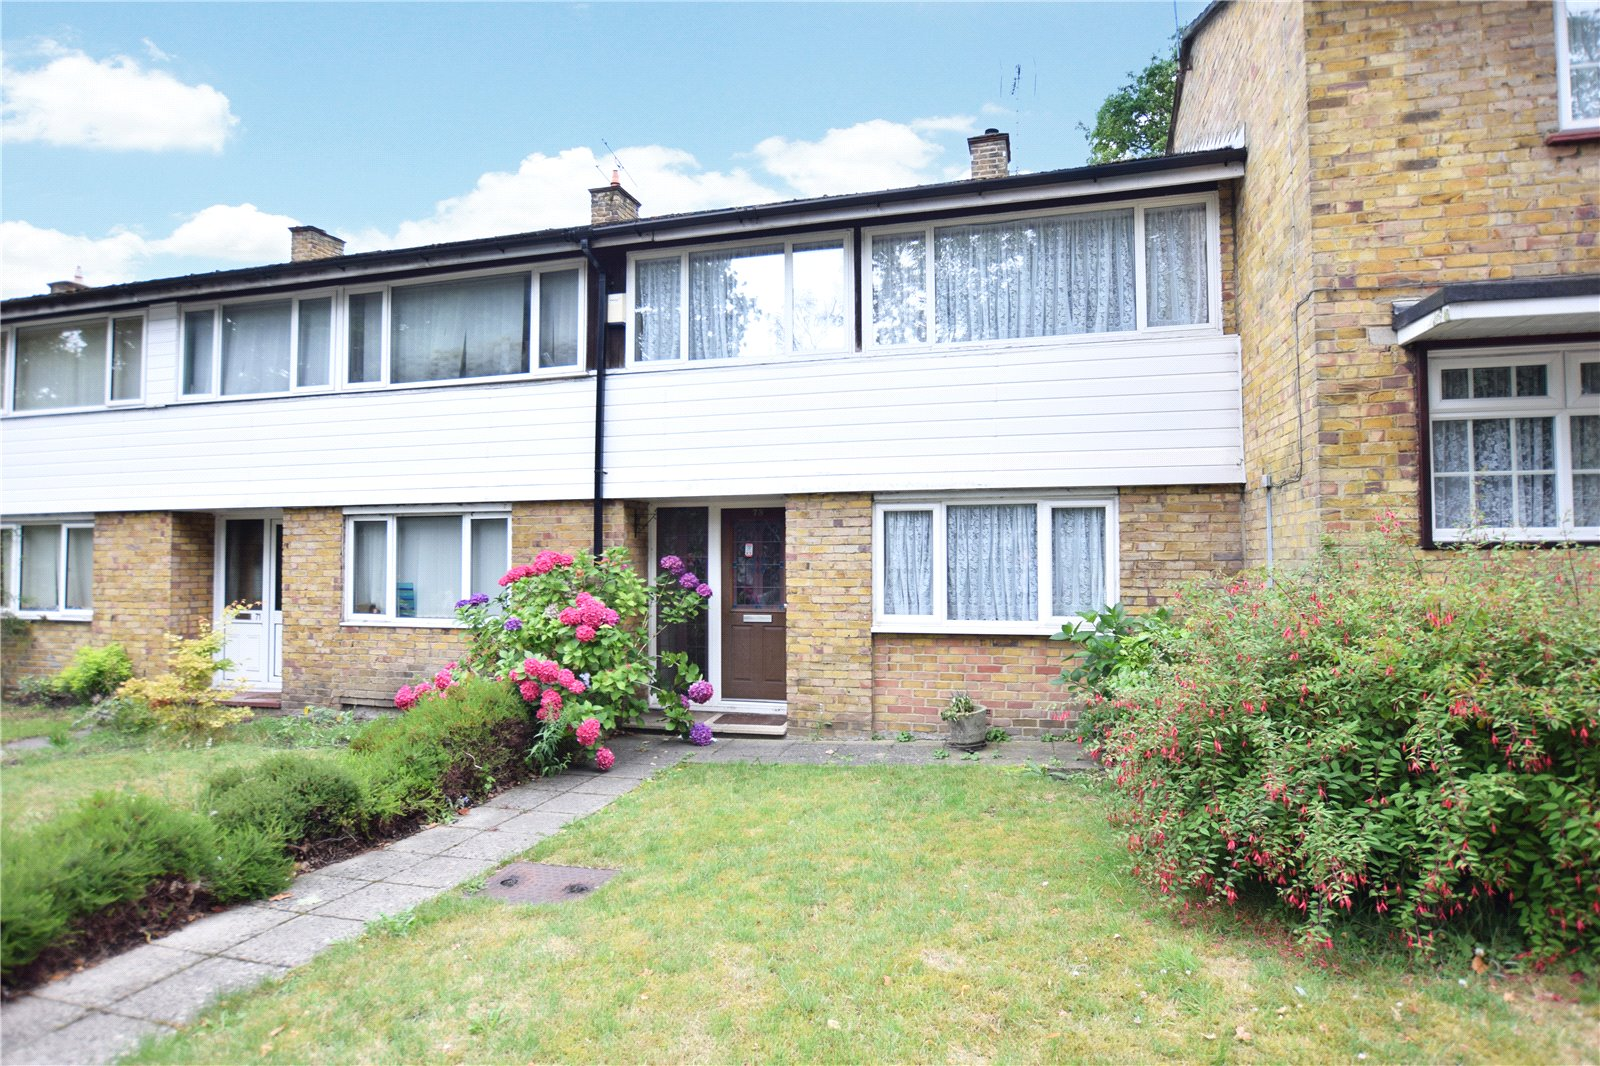 3 Bedrooms Terraced House for sale in Ralphs Ride, Bracknell, Berkshire, RG12